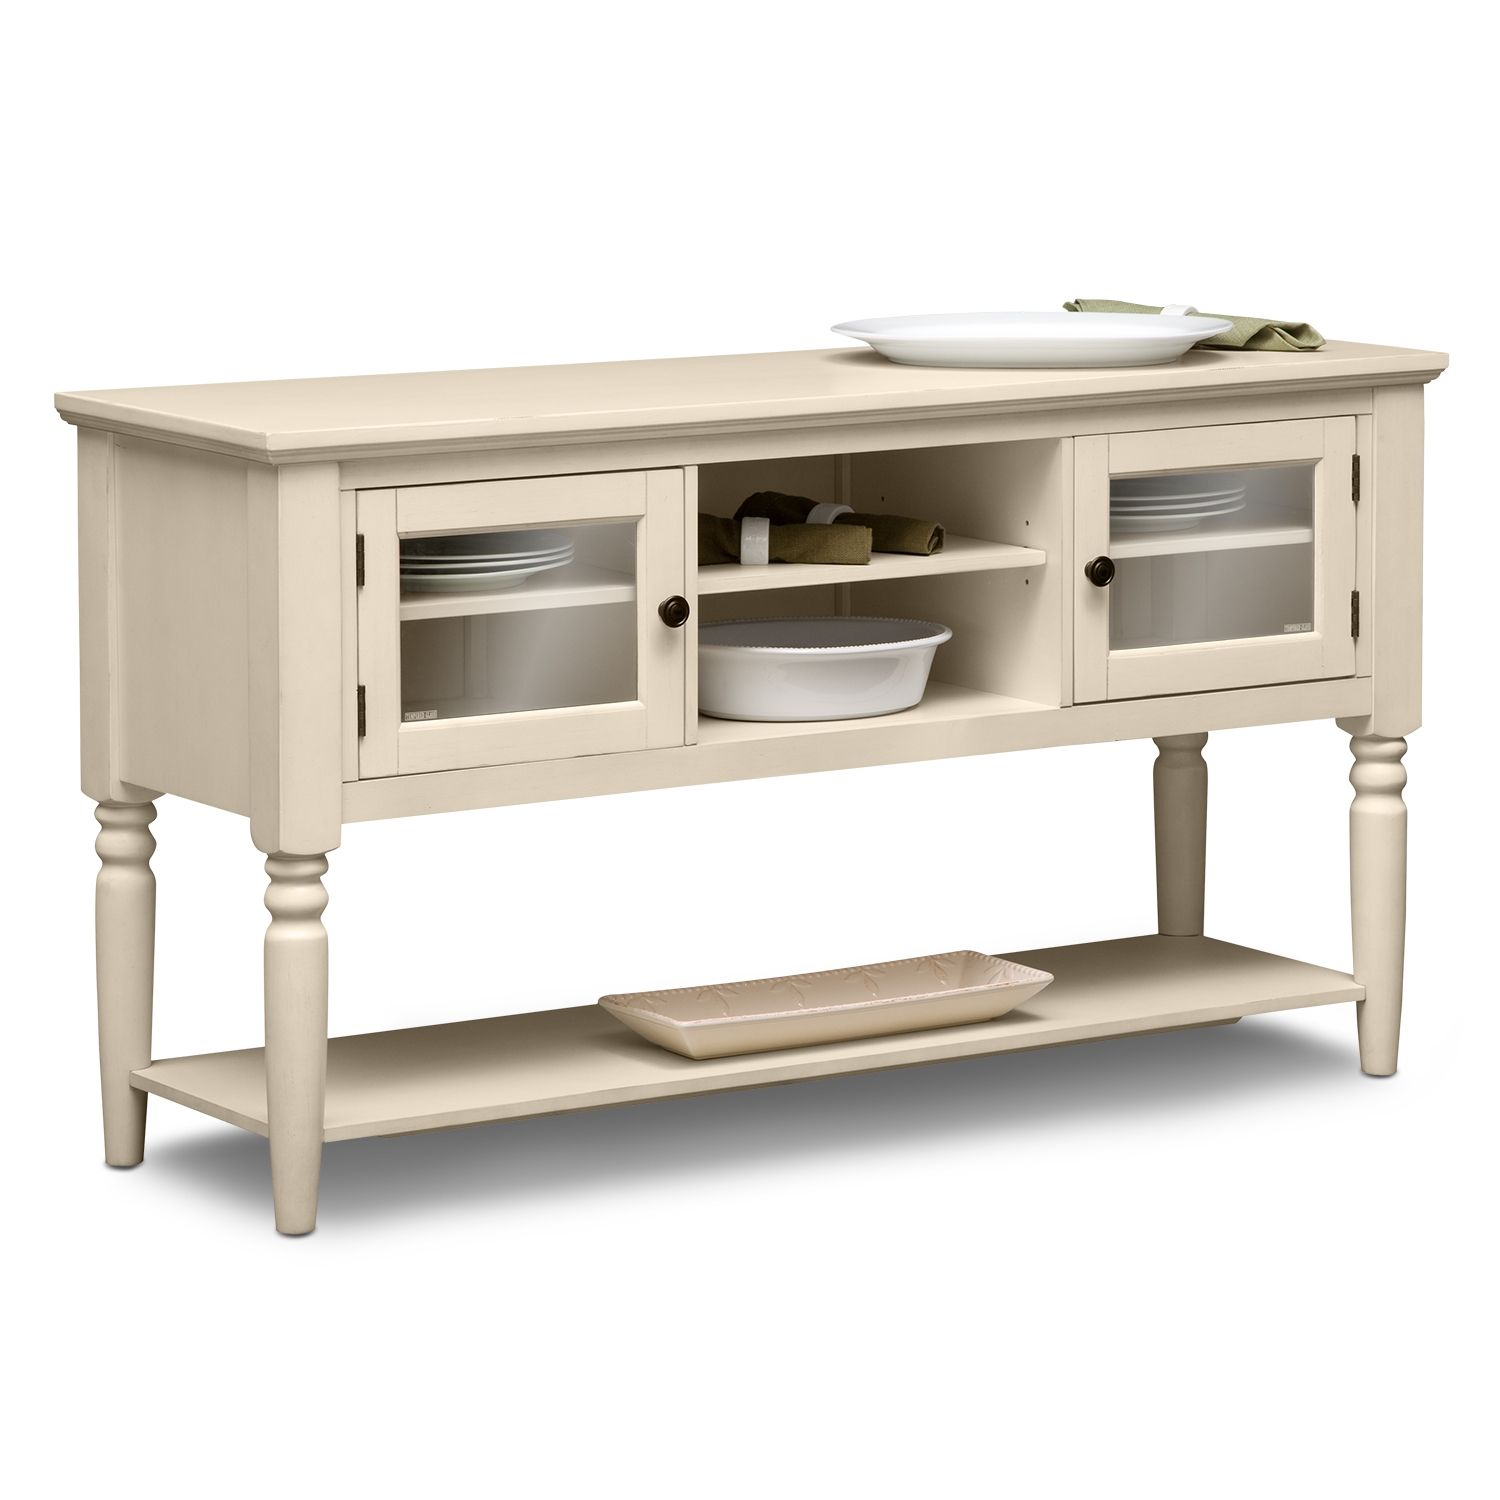 Carnival White Dining Room Server   Value City Furniture